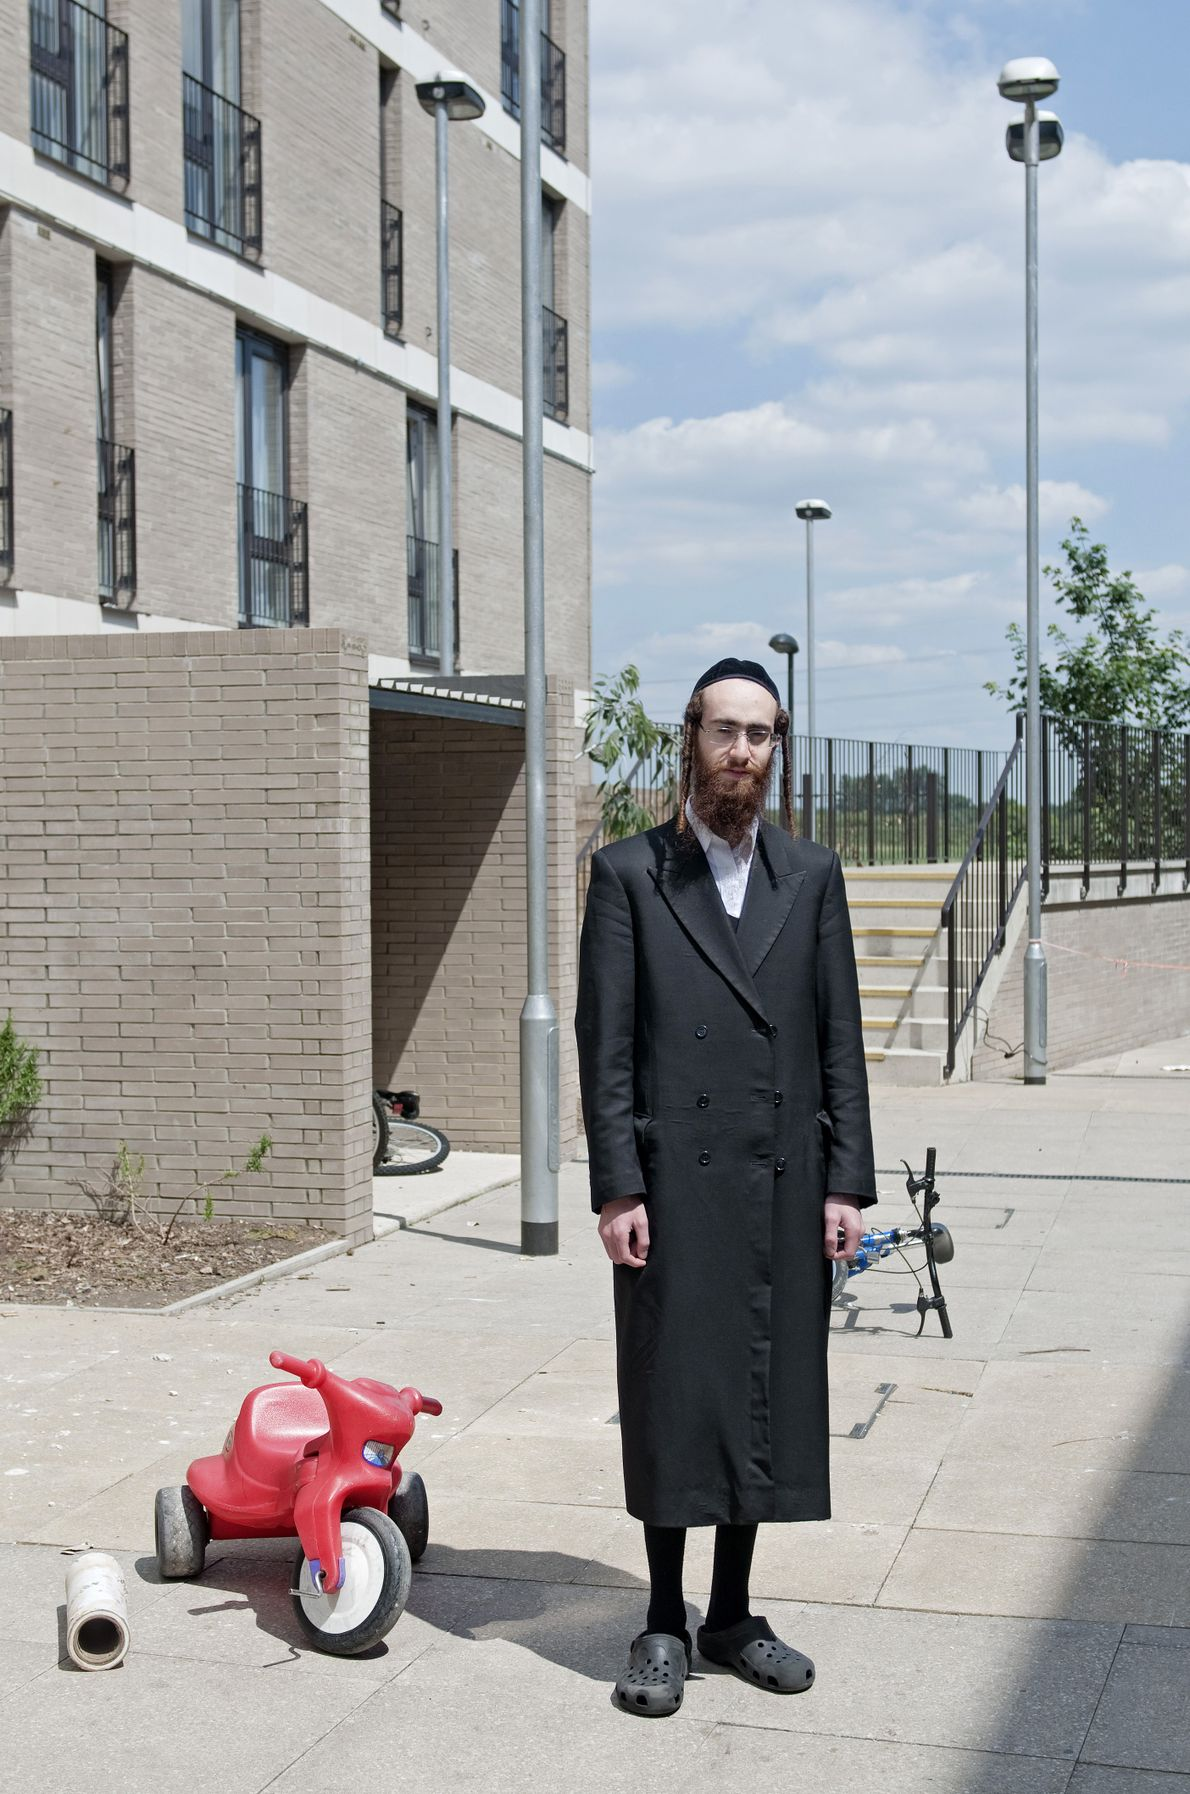 A member of the Jewish community in Hackney, London